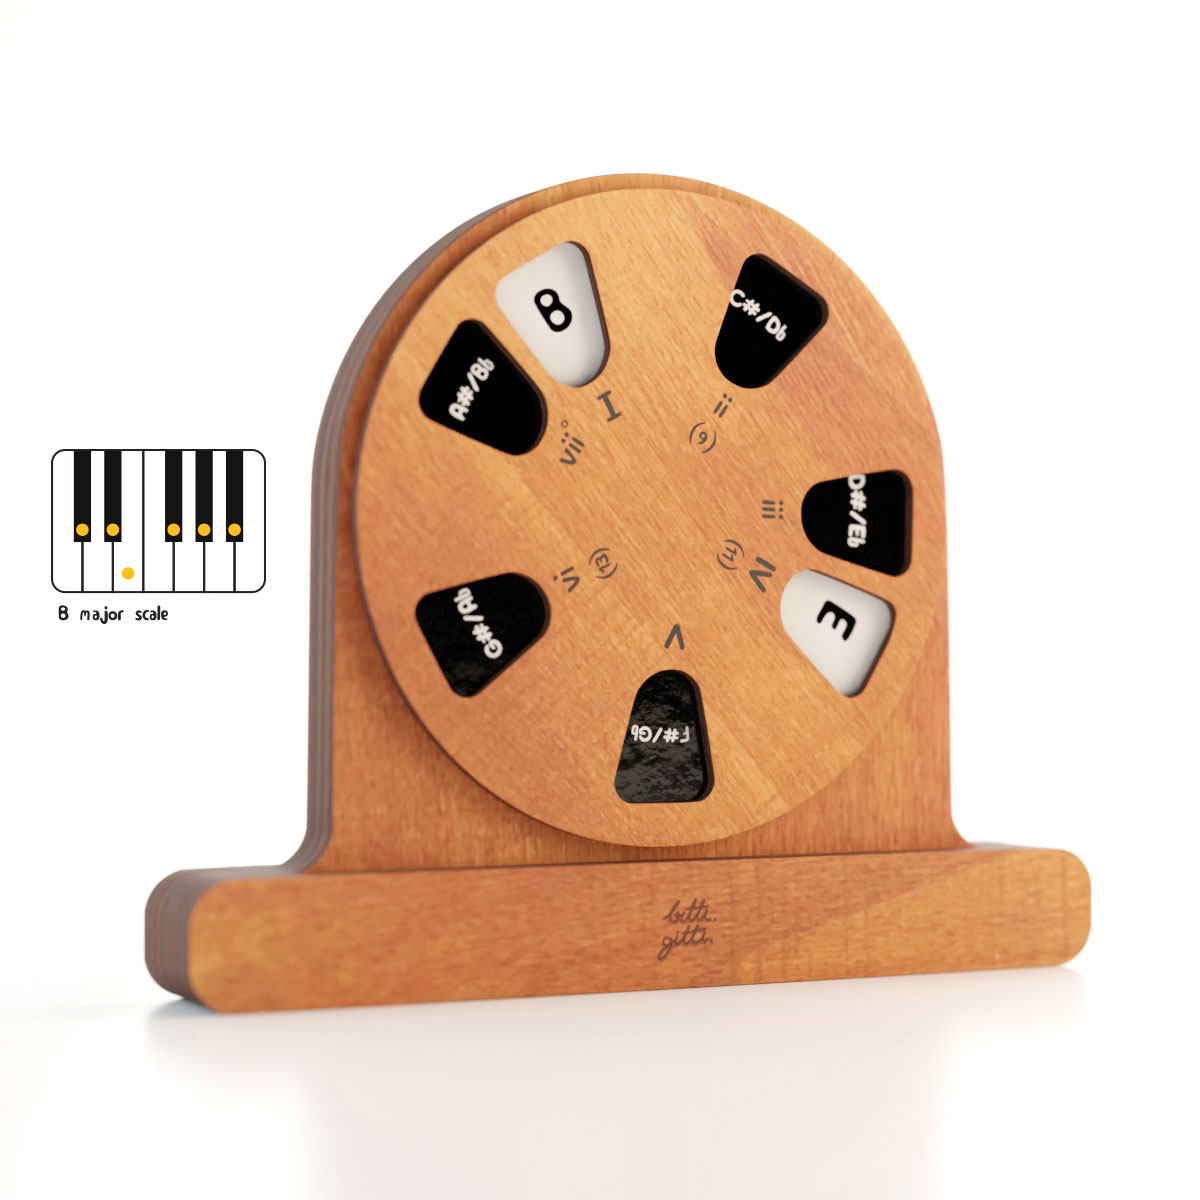 the wooden musical object